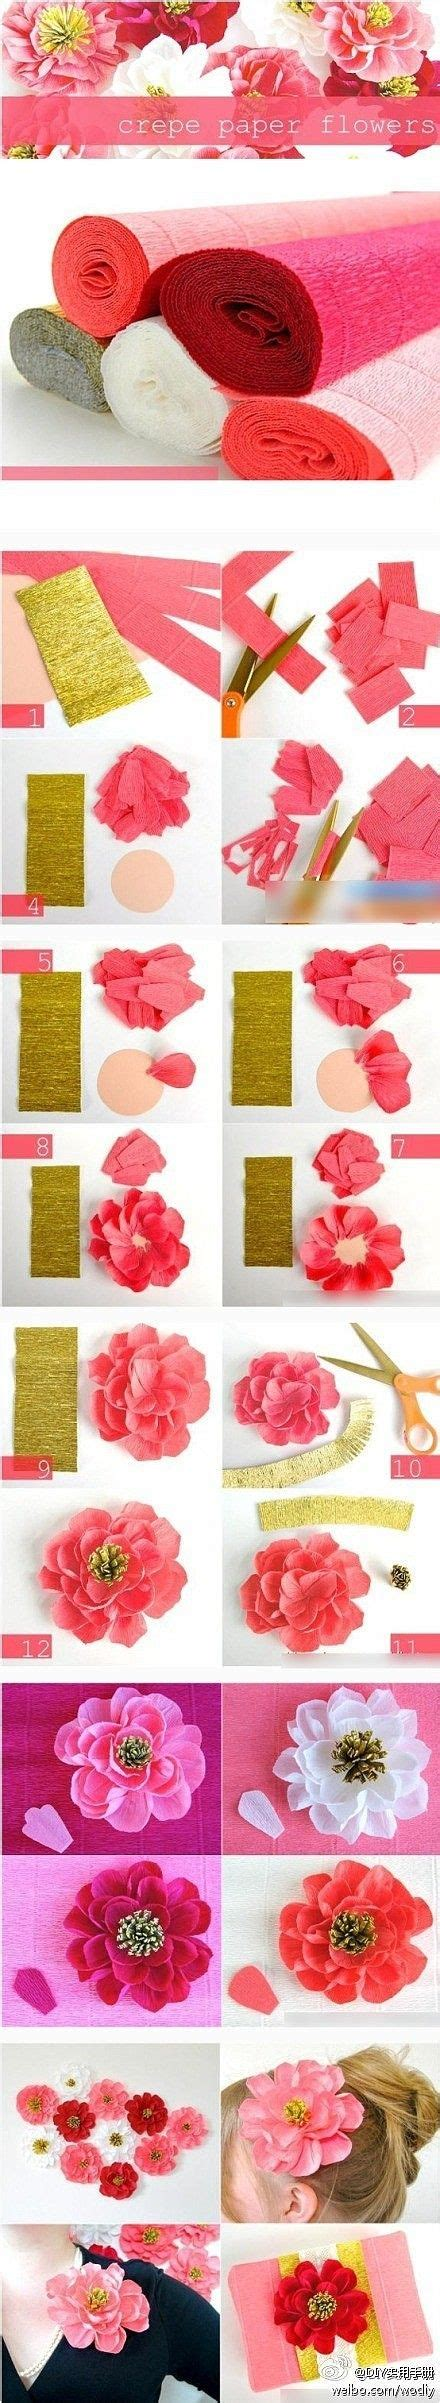 Things To Make With Crepe Paper - crepe paper flowers crafts